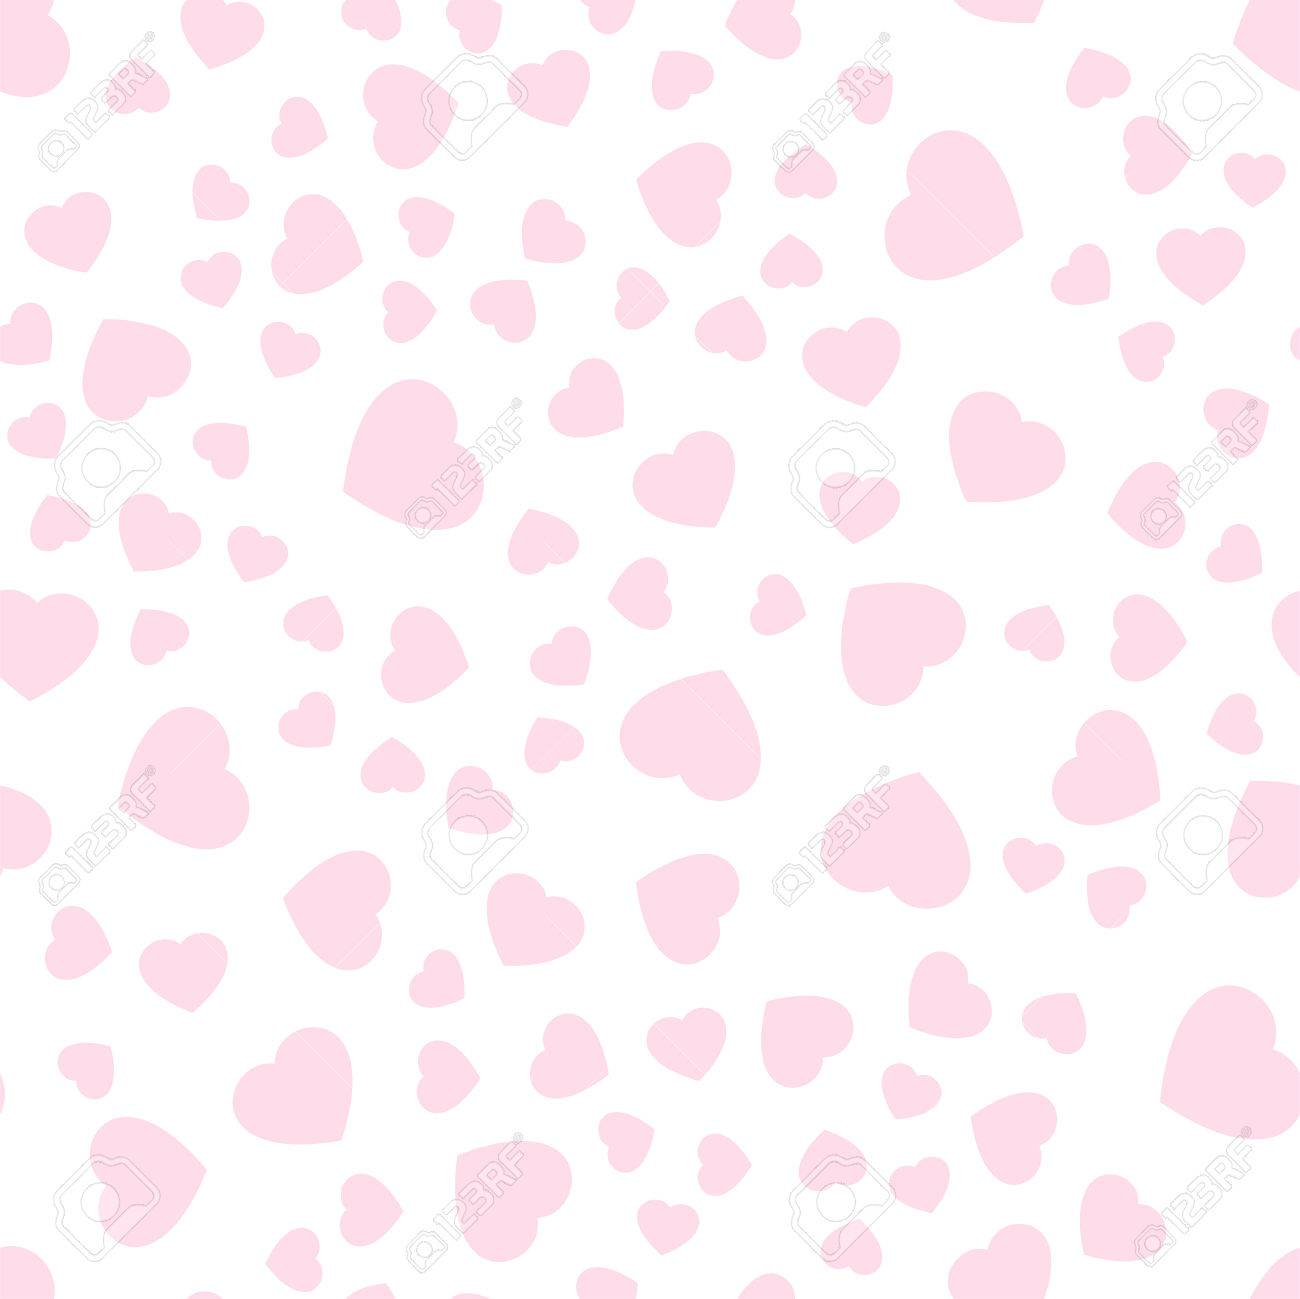 Seamless Patterns With Pink Hearts Valentine S Day Gift Wrap